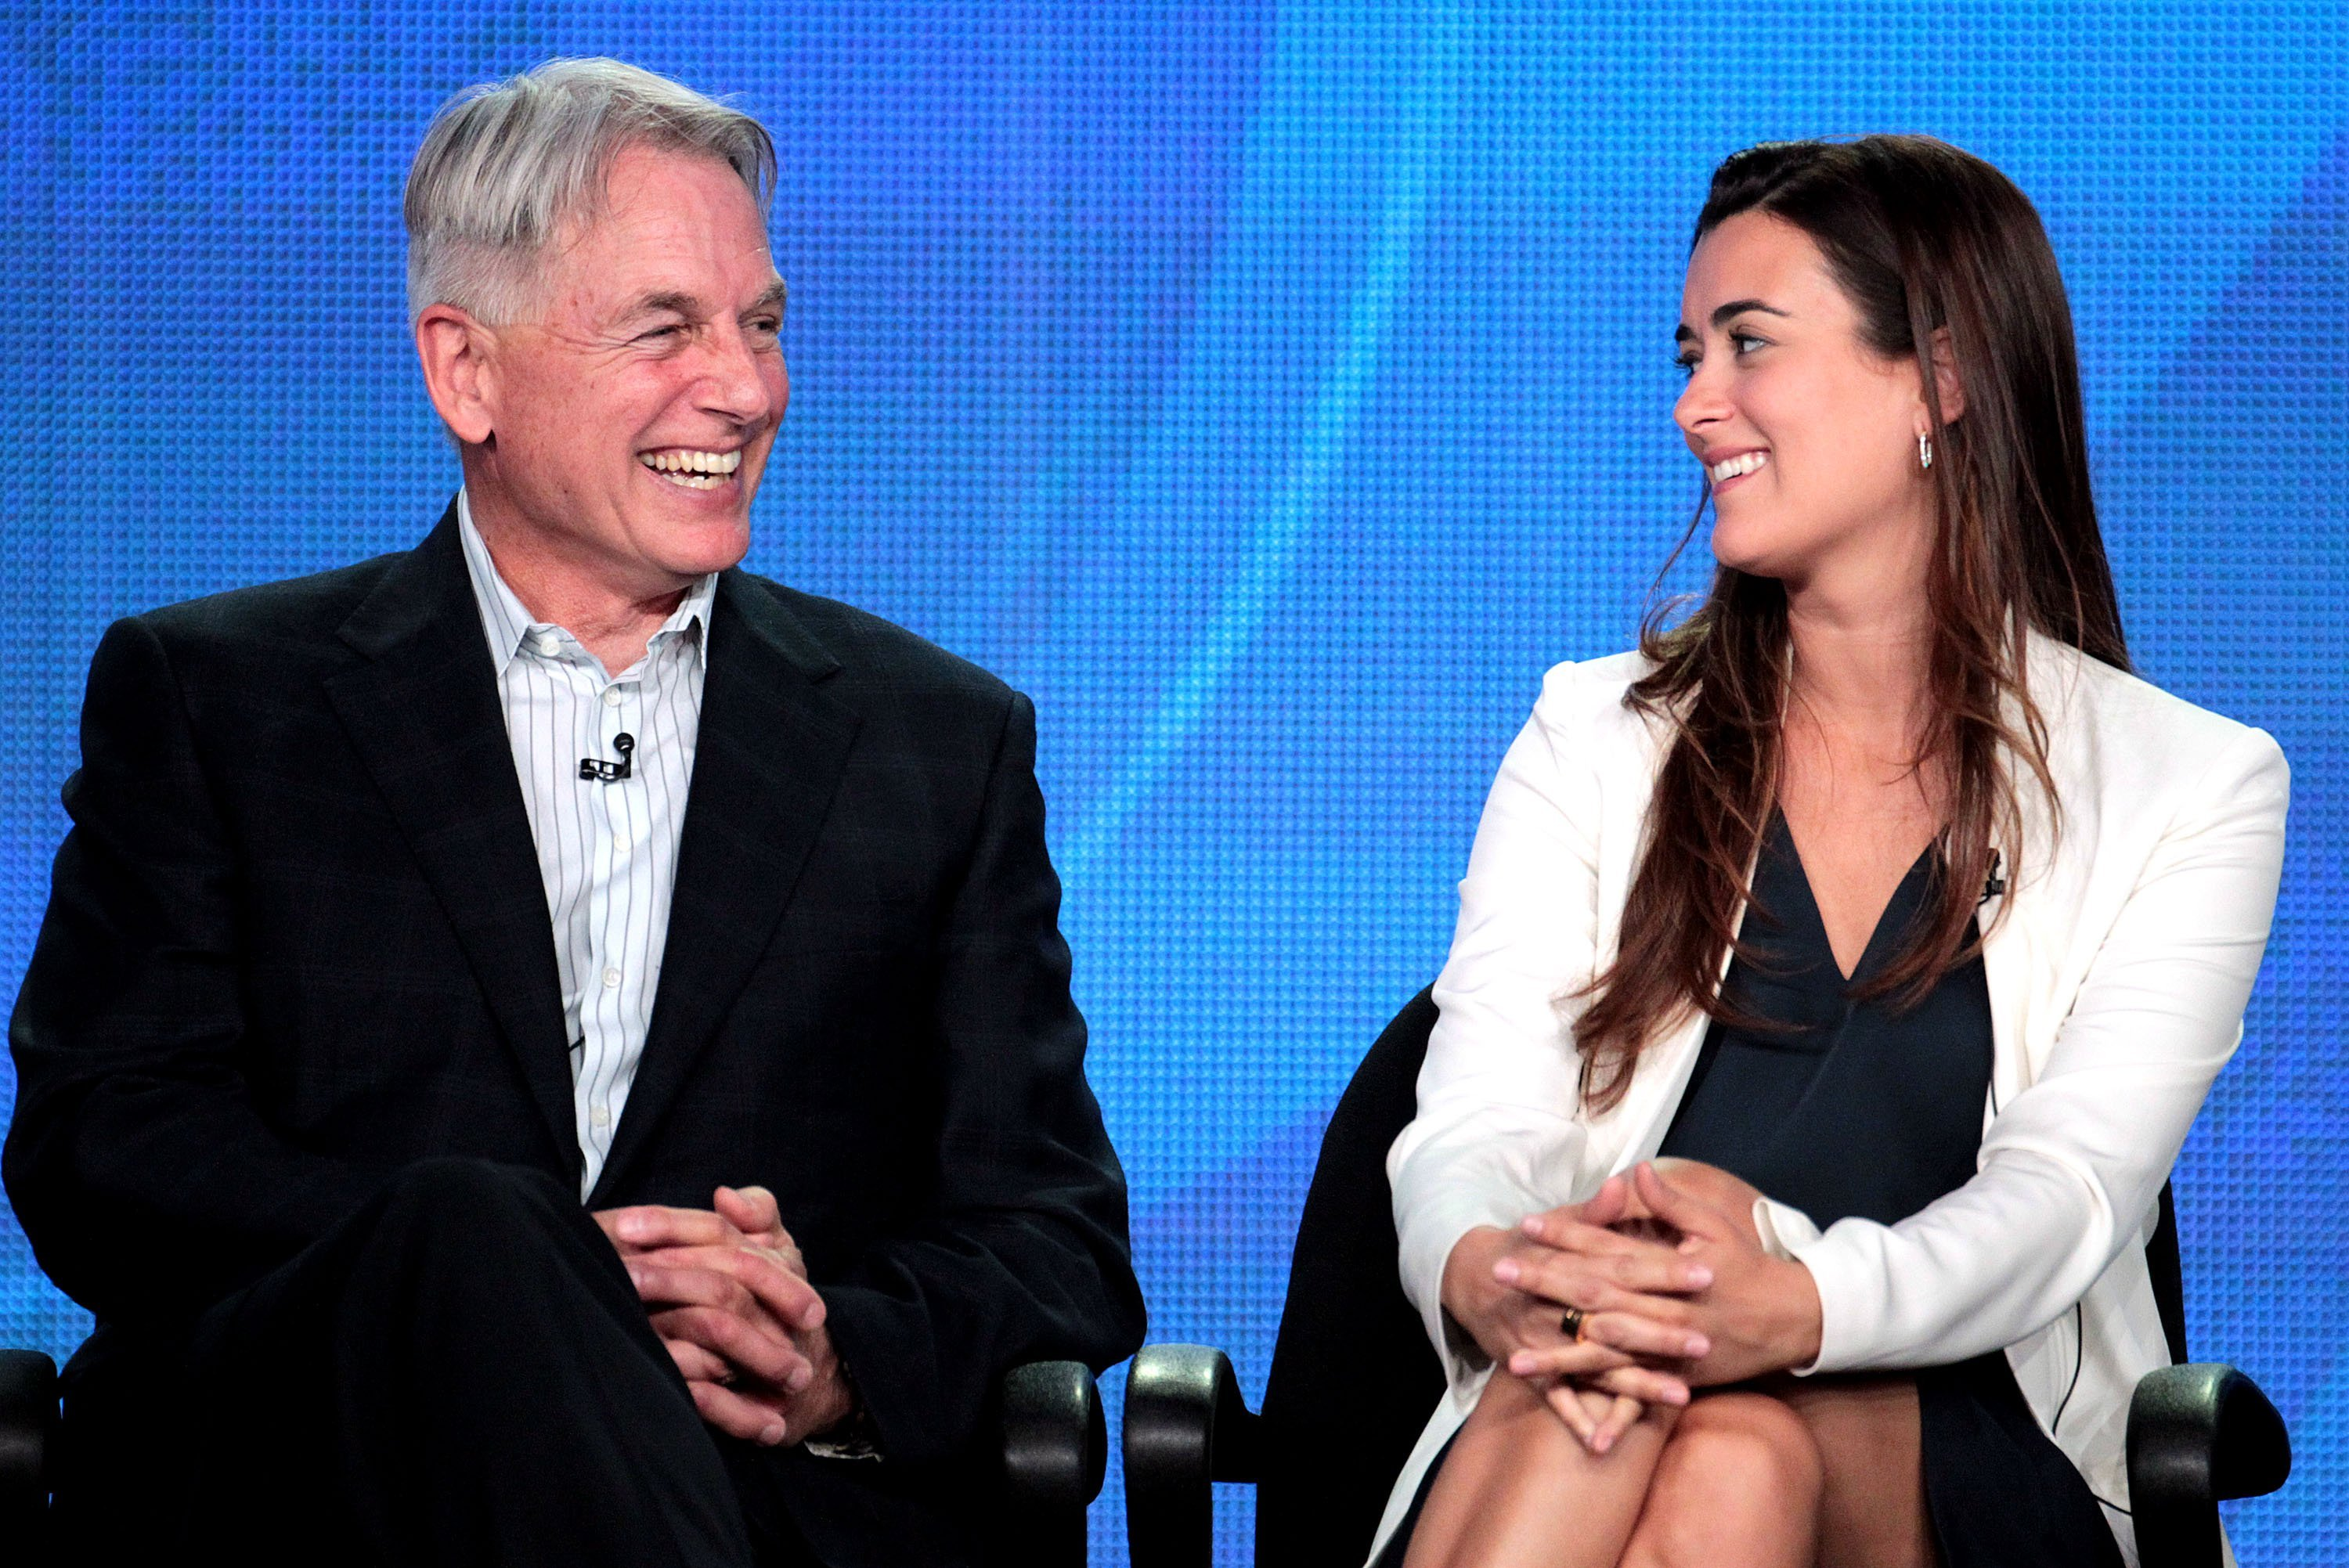 Mark Harmon and Cote de Pablo on January 11, 2012 in Pasadena, California | Source: Getty Images